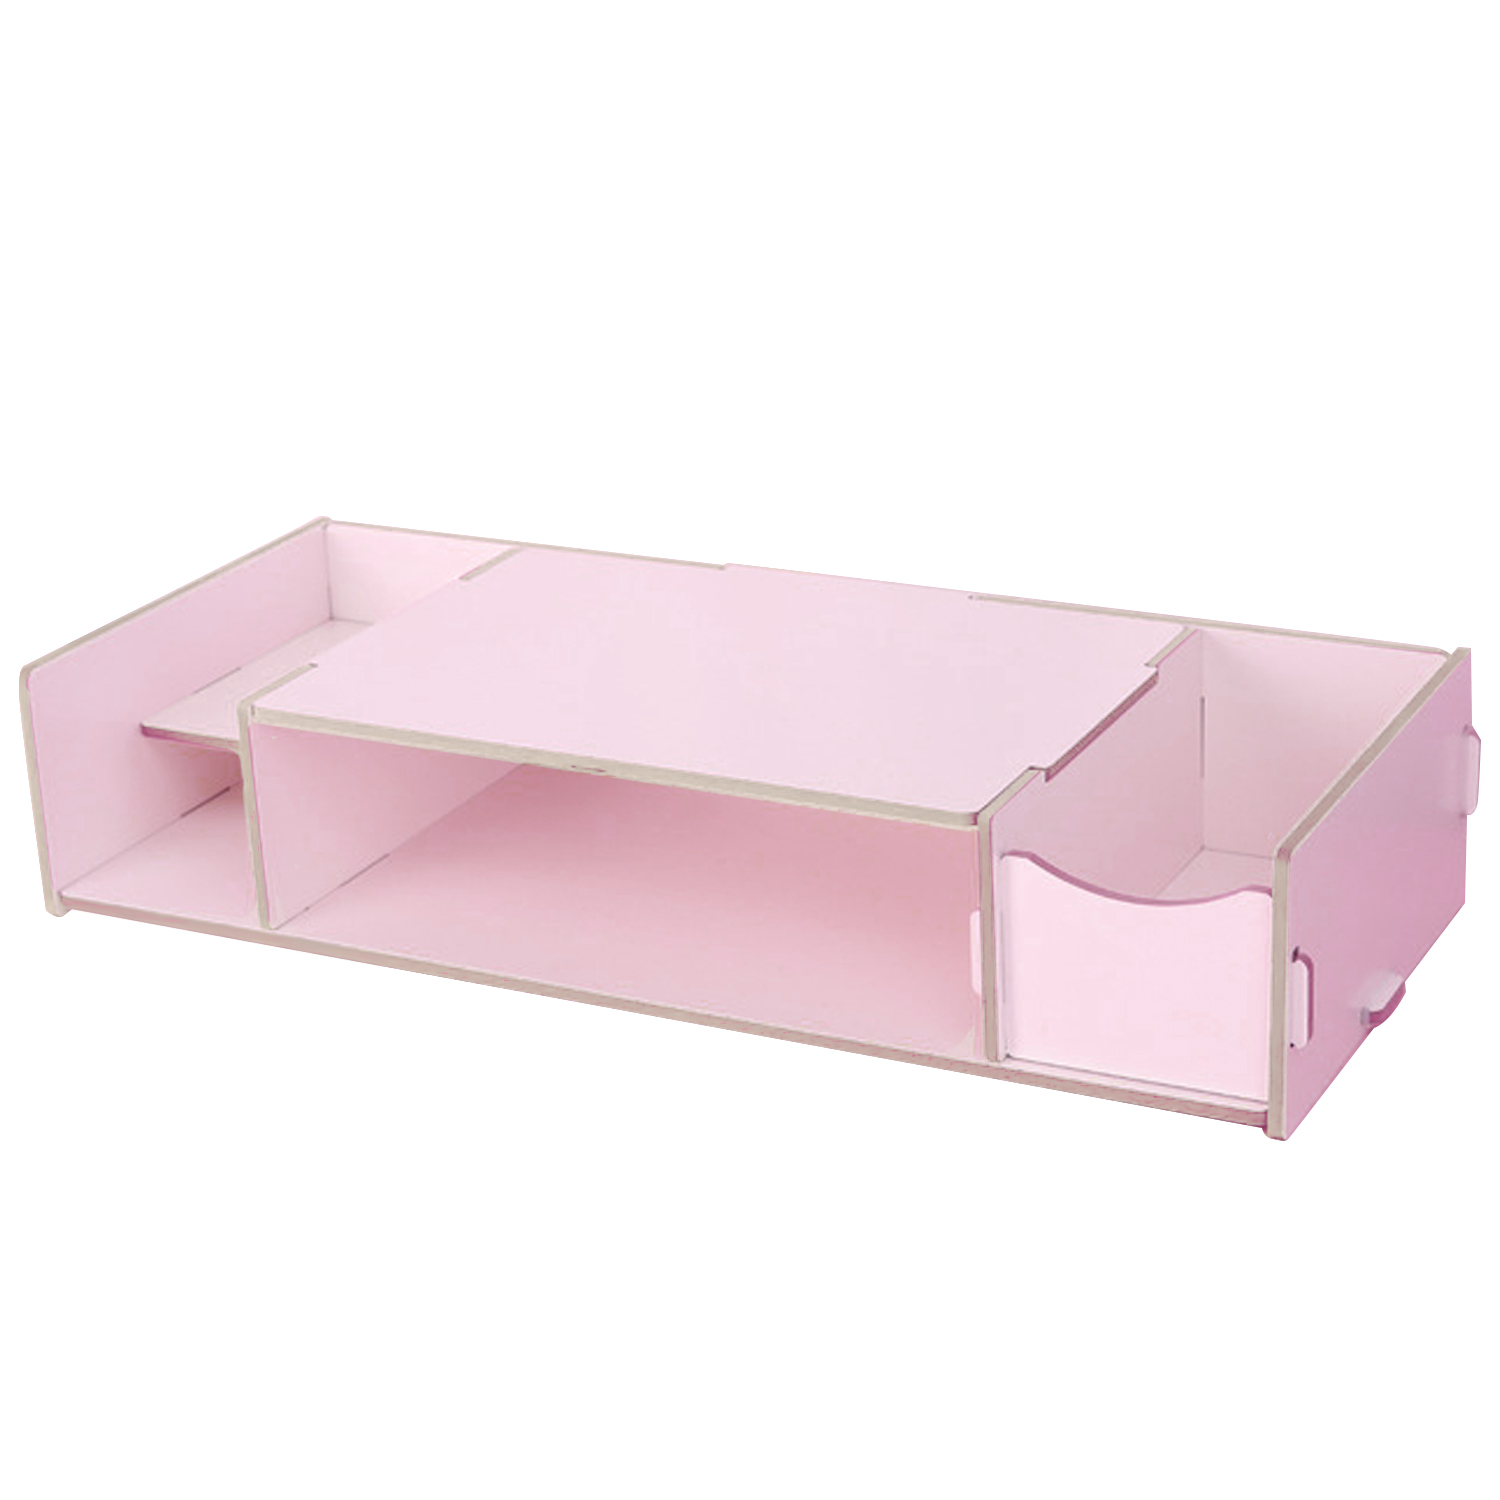 Eco-Friendly Desk Computer Display Monitor Keyboard Riser Stand Placement Organizer Shelf with Storage Slots for Files Note Books Office Supplies Pink